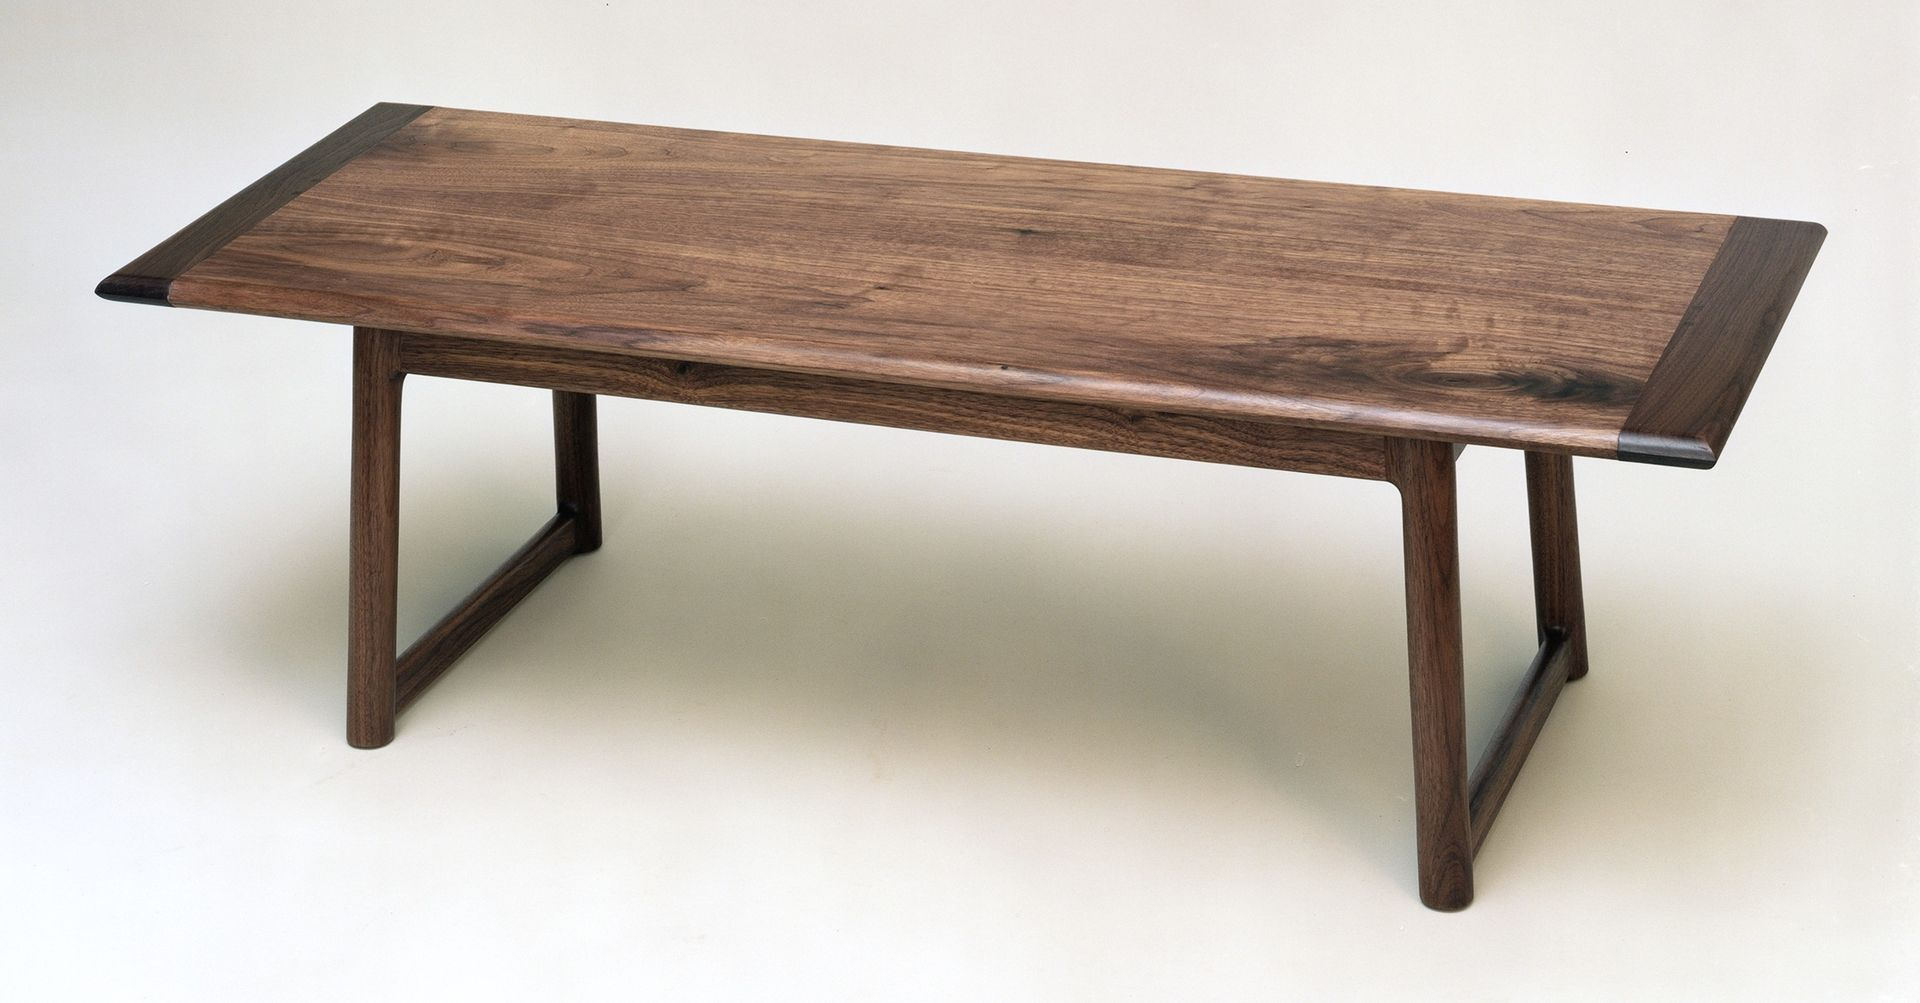 Custom Danish Modern Coffee Table by Milk Furniture Co